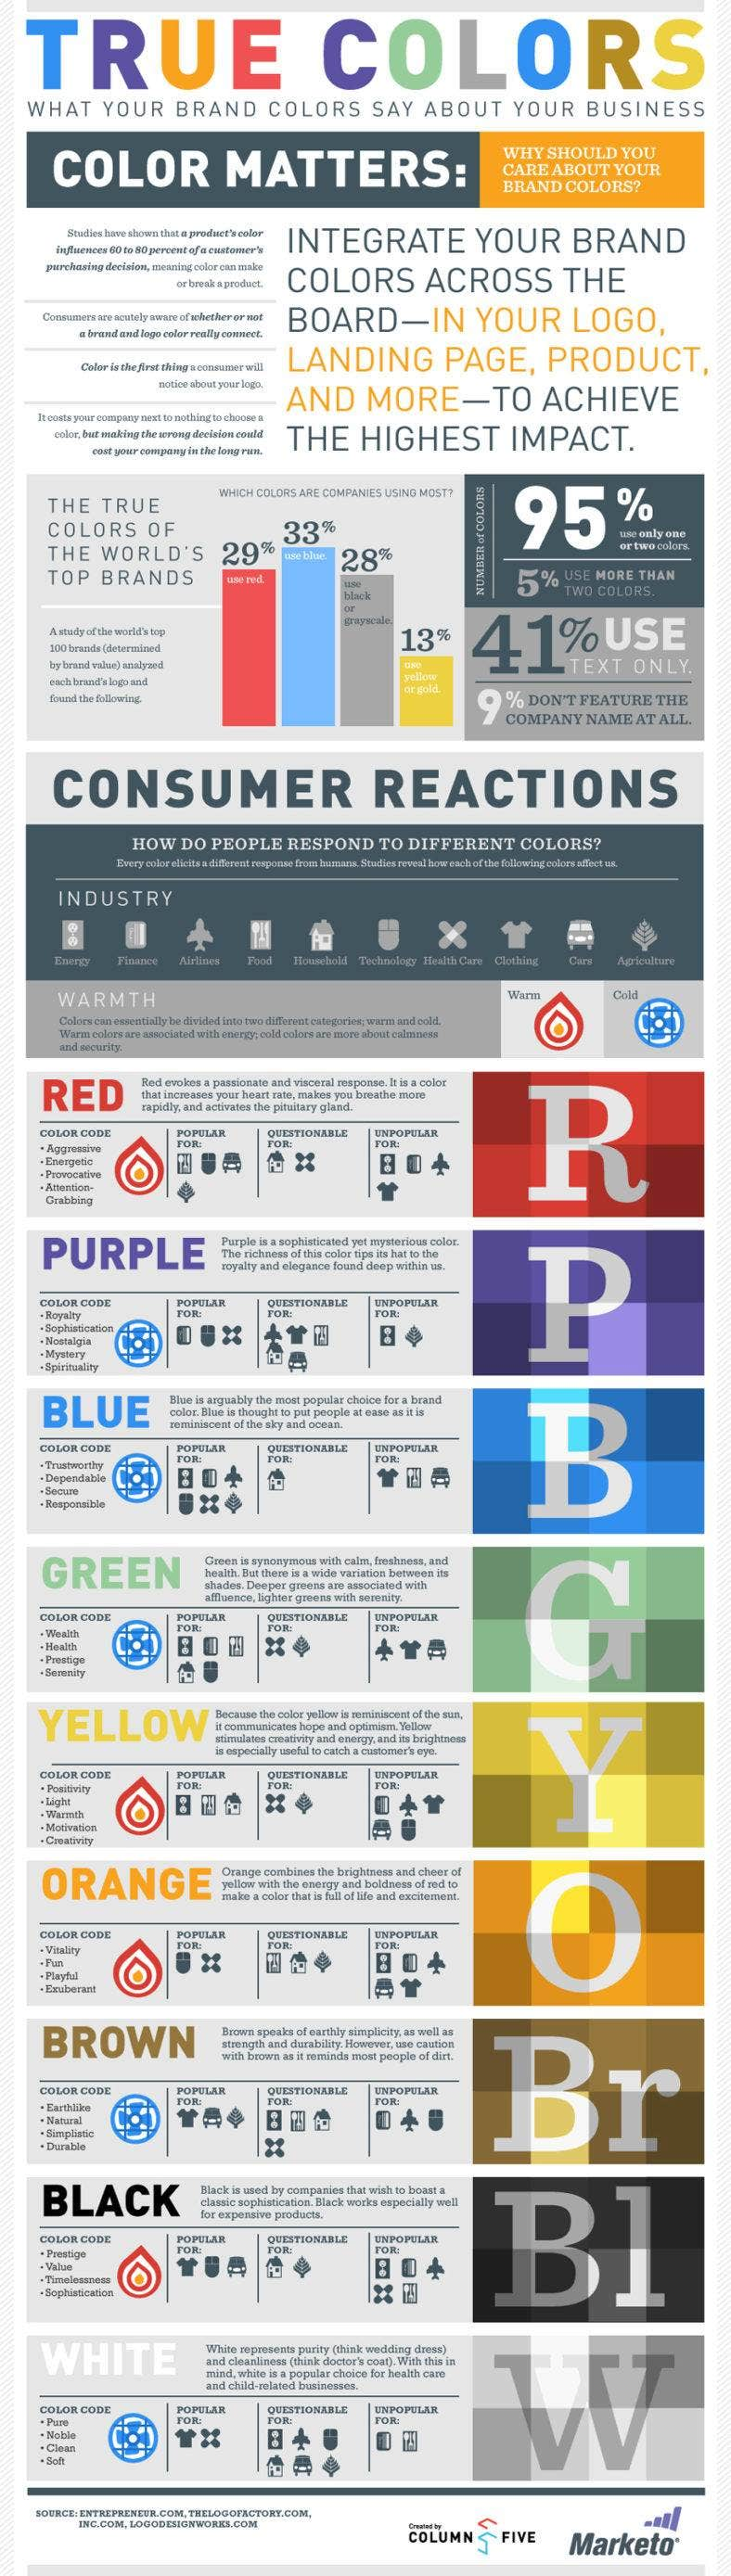 marketo infographic true colors what your brand colors say about your business 11 788x2778